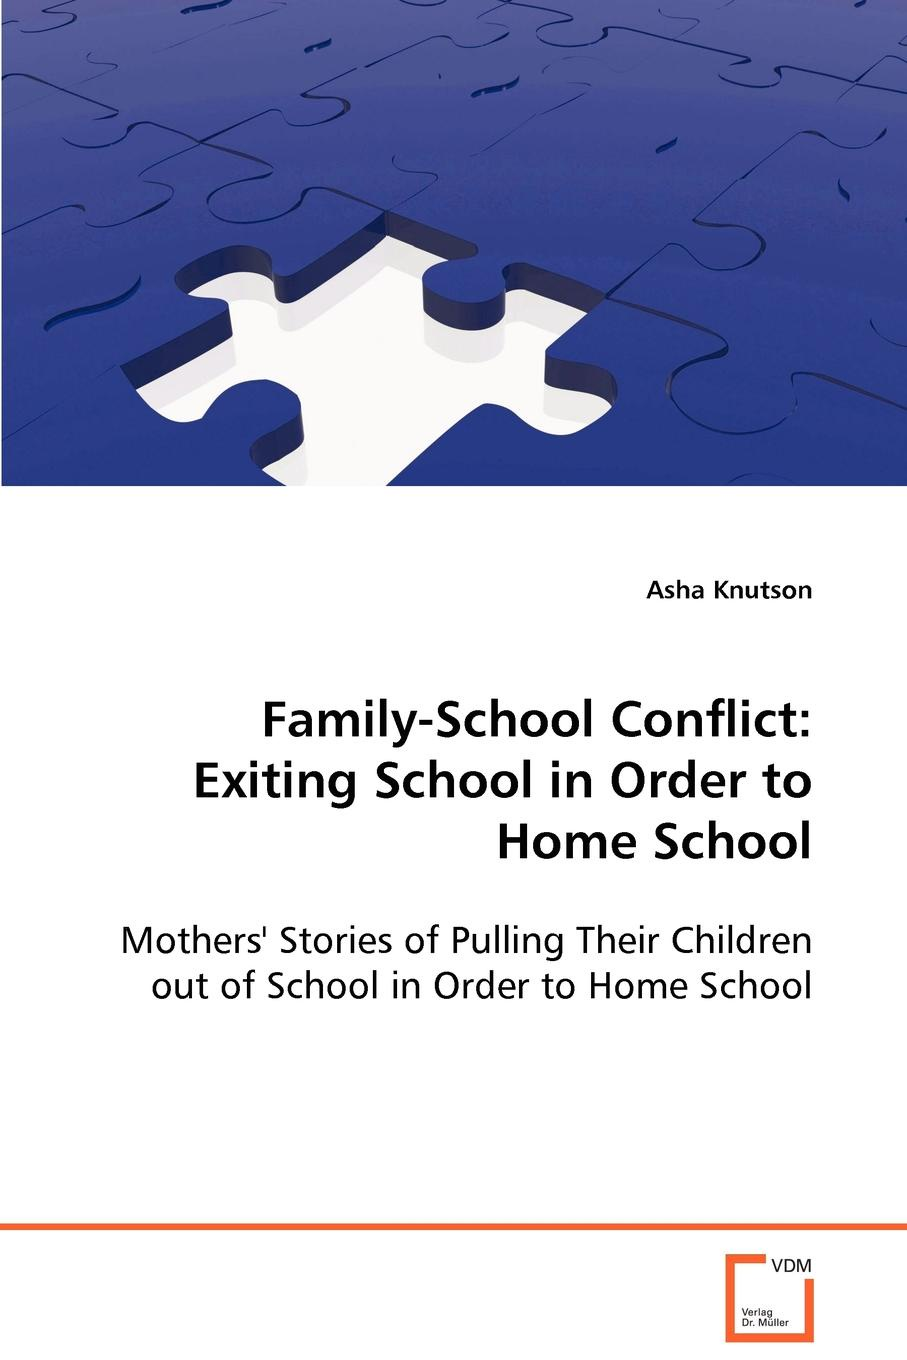 Asha Knutson Family-School Conflict. Exiting School in Order to Home